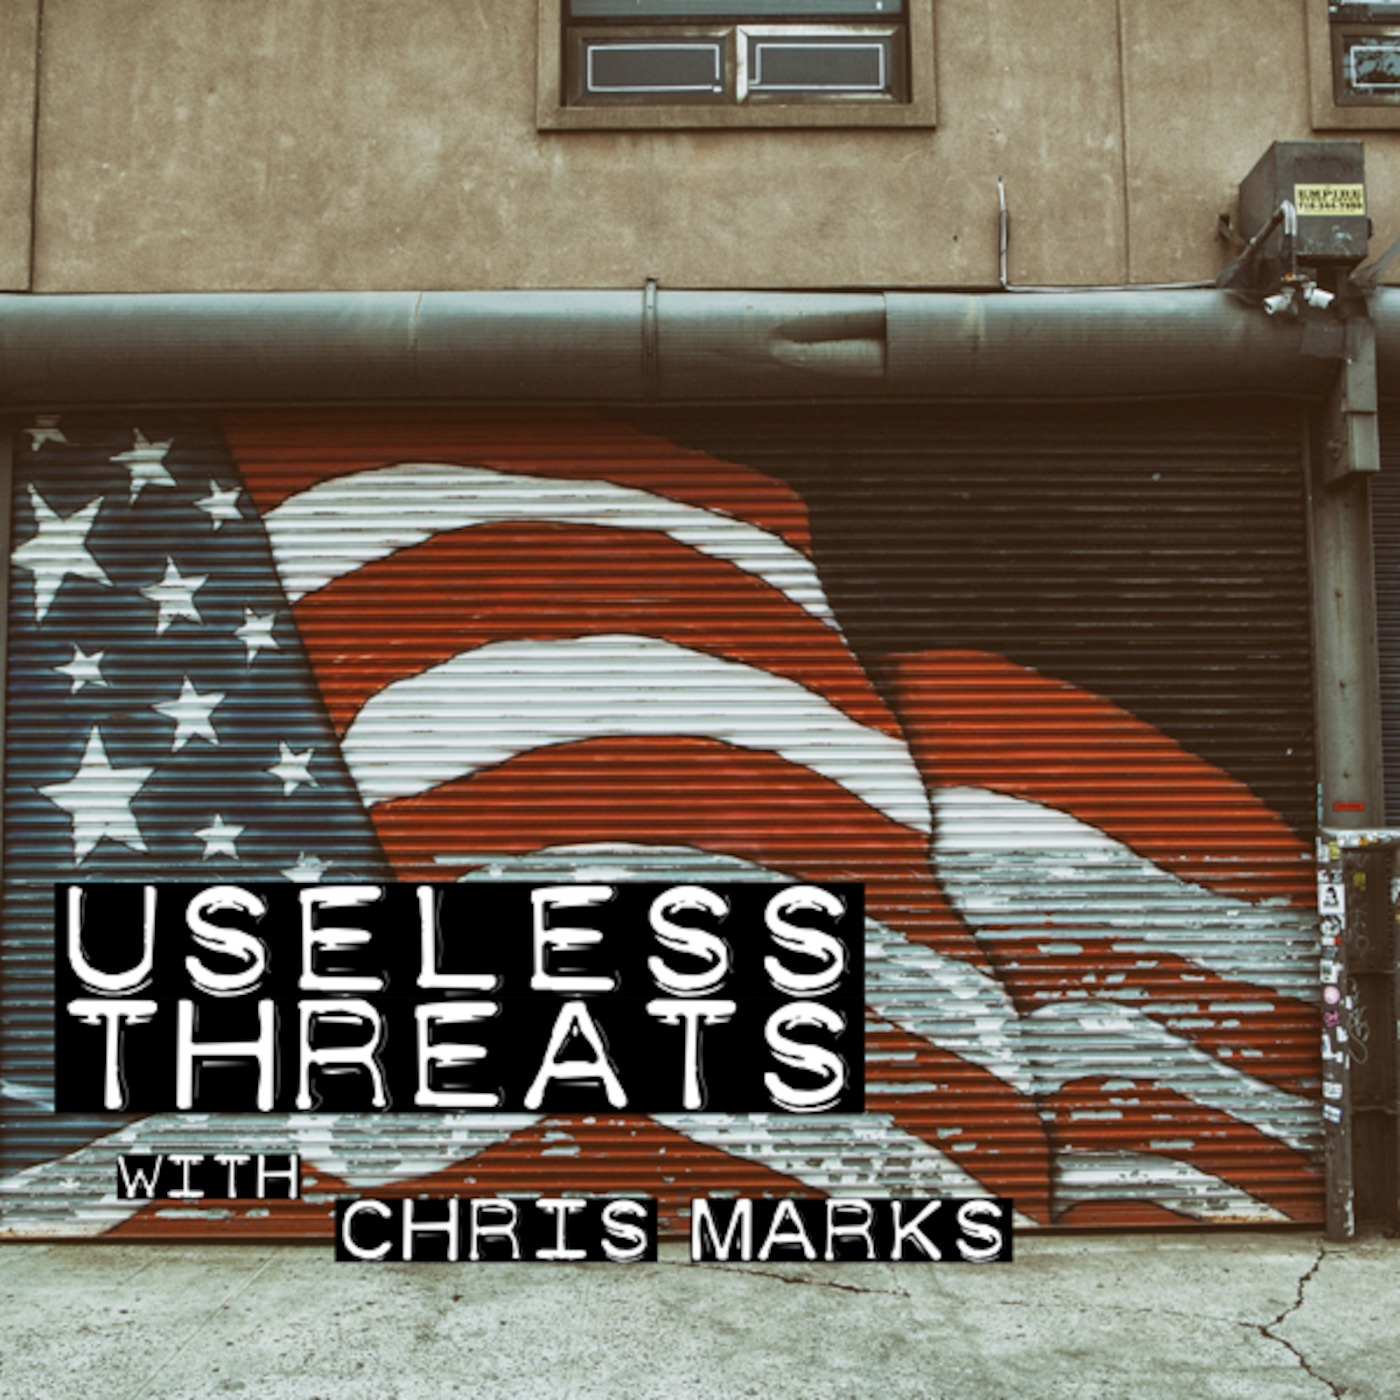 Useless Threats with Chris Marks